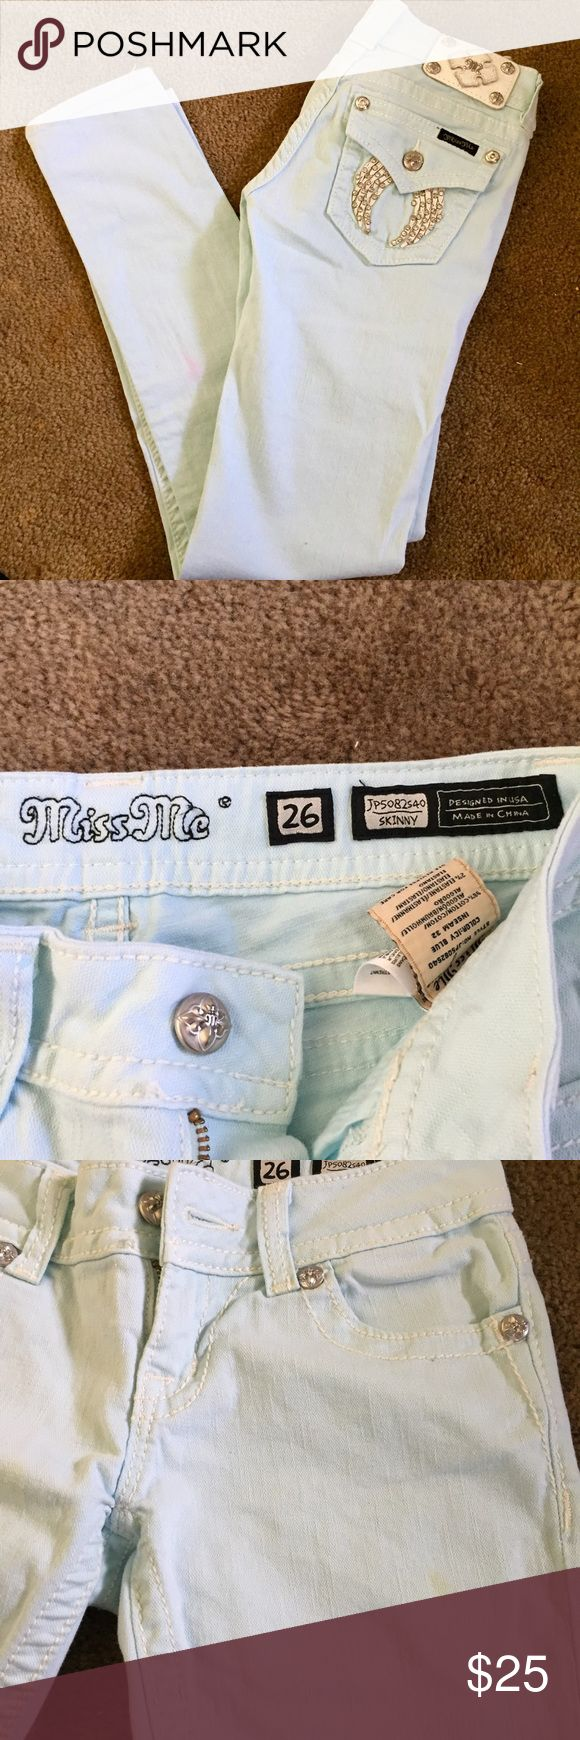 Miss Me icy blue skinny jeans Sz 26 Miss Me skinny jeans icy blue size 26. There are some marks on the garment. ( see pictures) not sure if it comes off. Very cute you can cut off and wear as shorts   Selling cheap. Miss Me Jeans Skinny